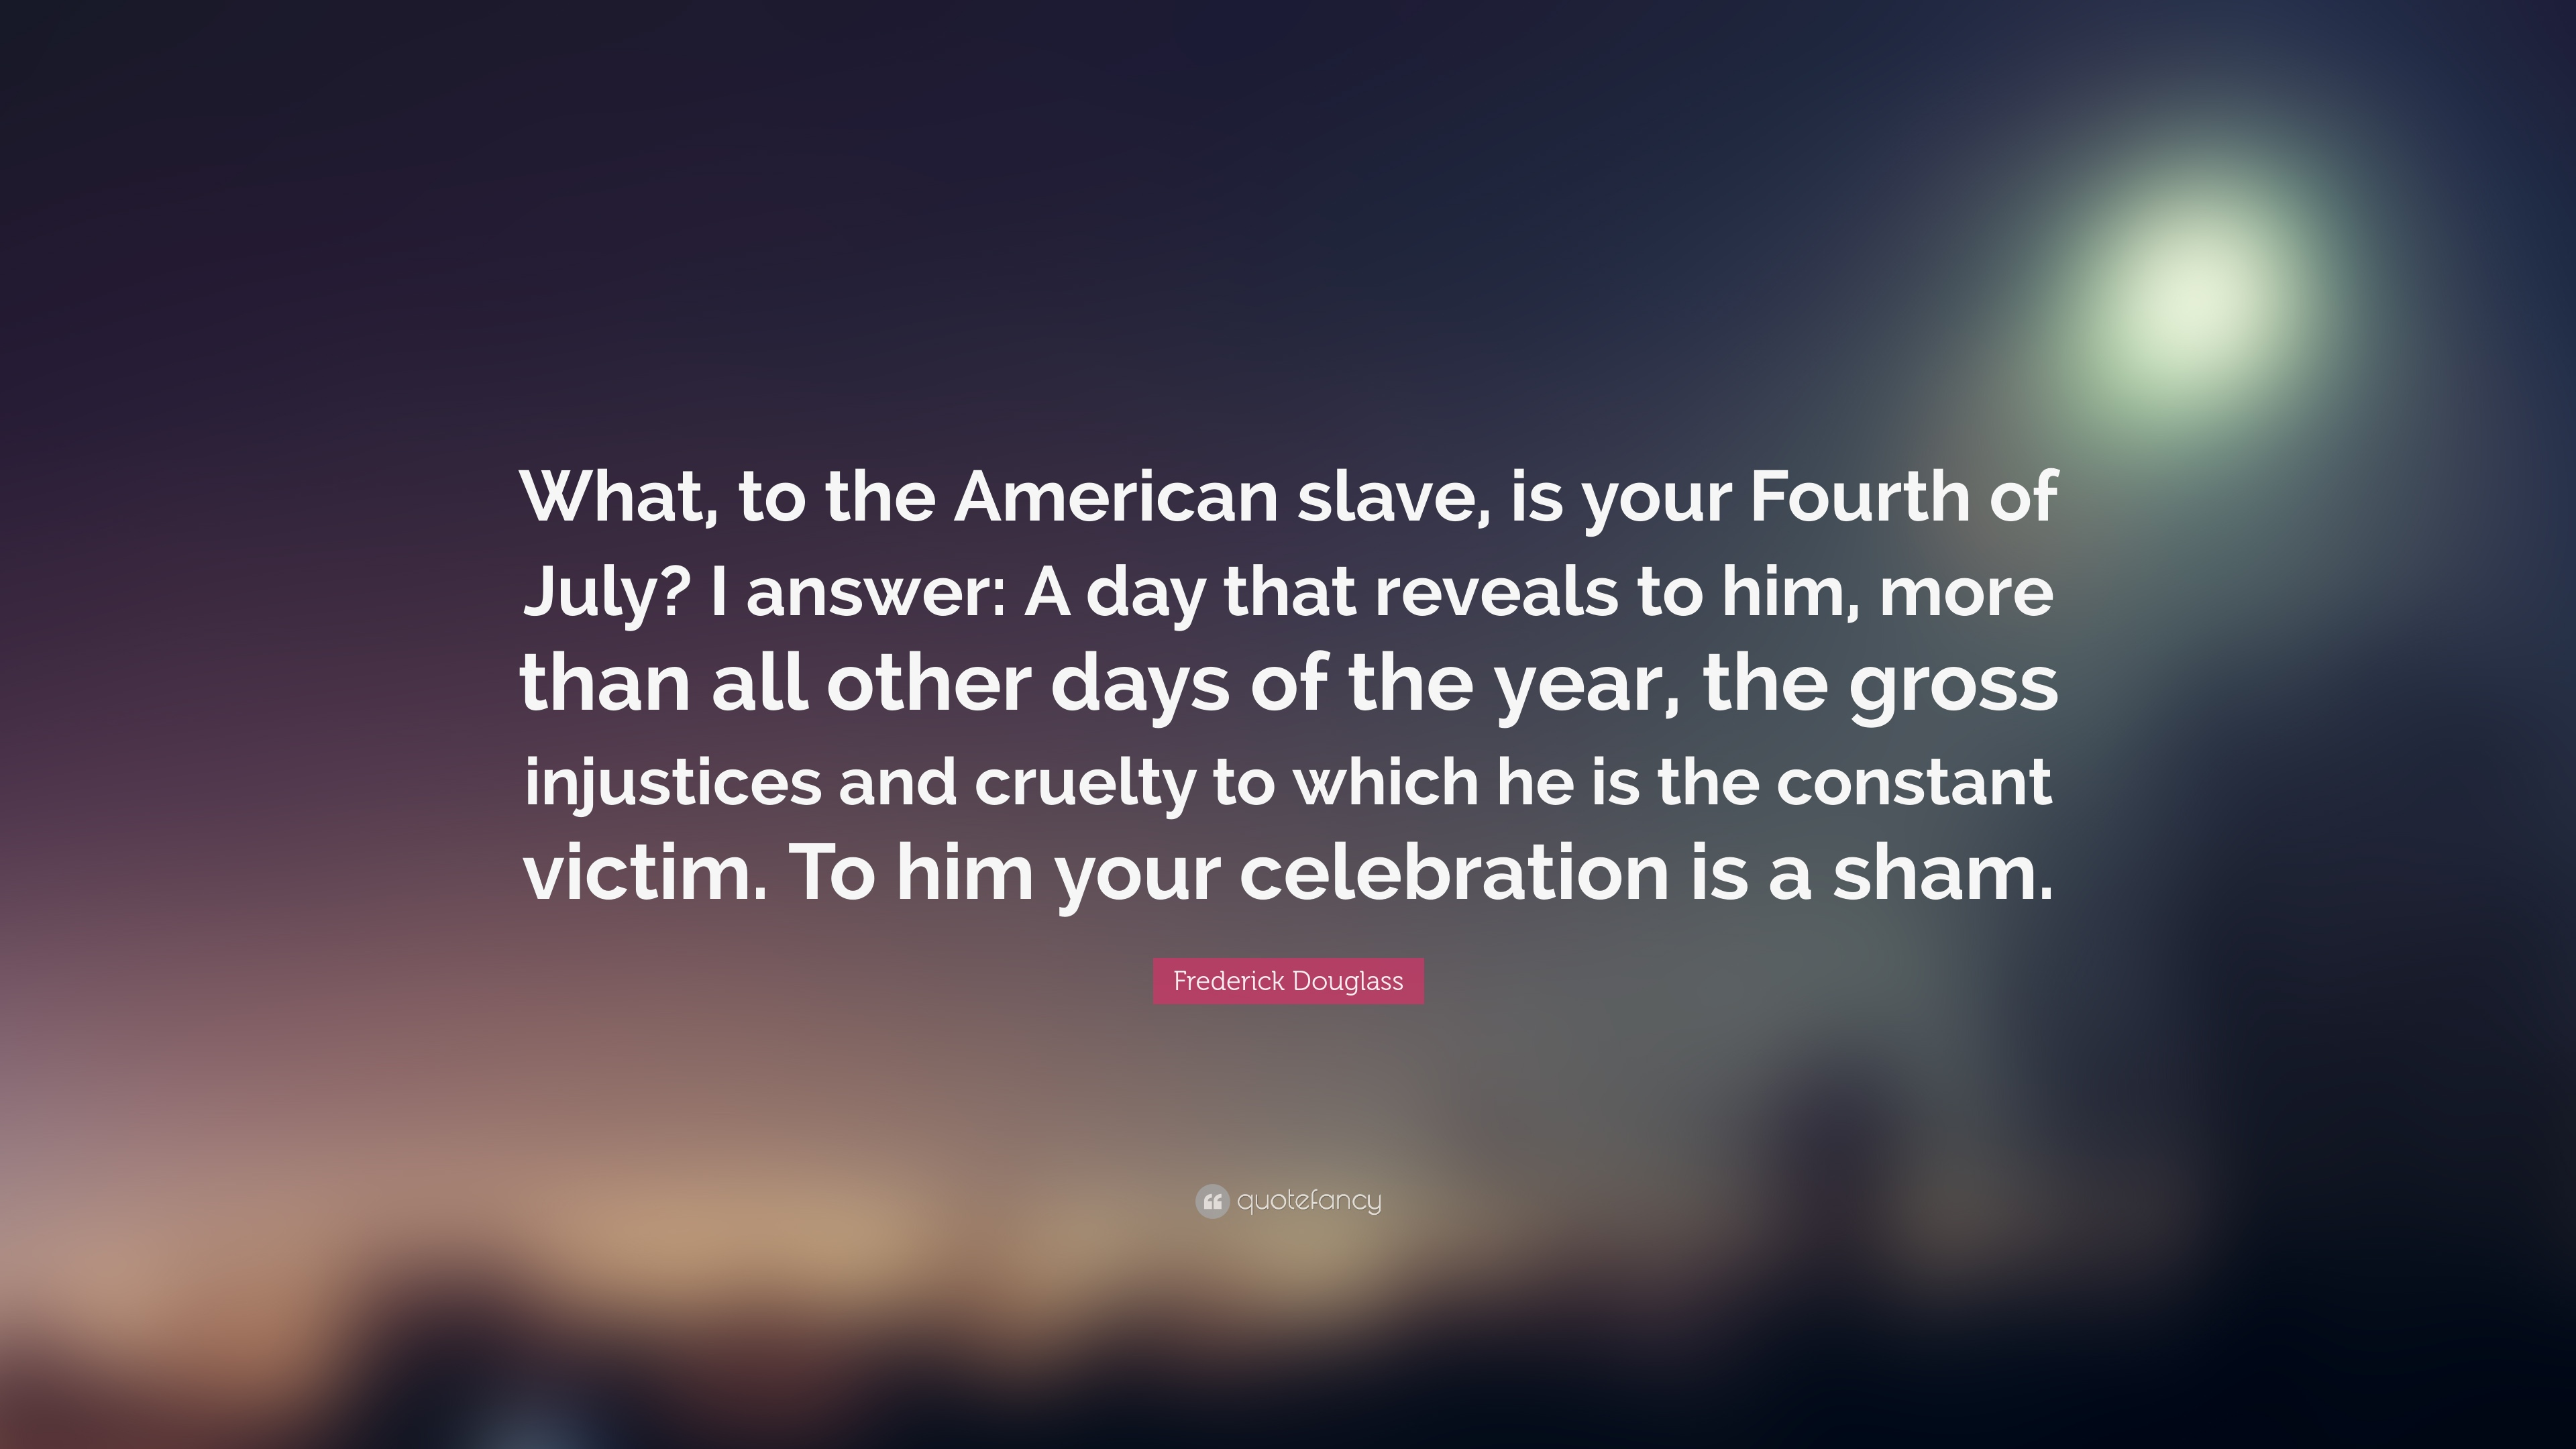 frederick douglass fourth of july essay Overview what is the fourth of july to the slaves in shadow of fugitive slave act of 1850 (1852) no real freedom of slaves if slaves have no freedom.